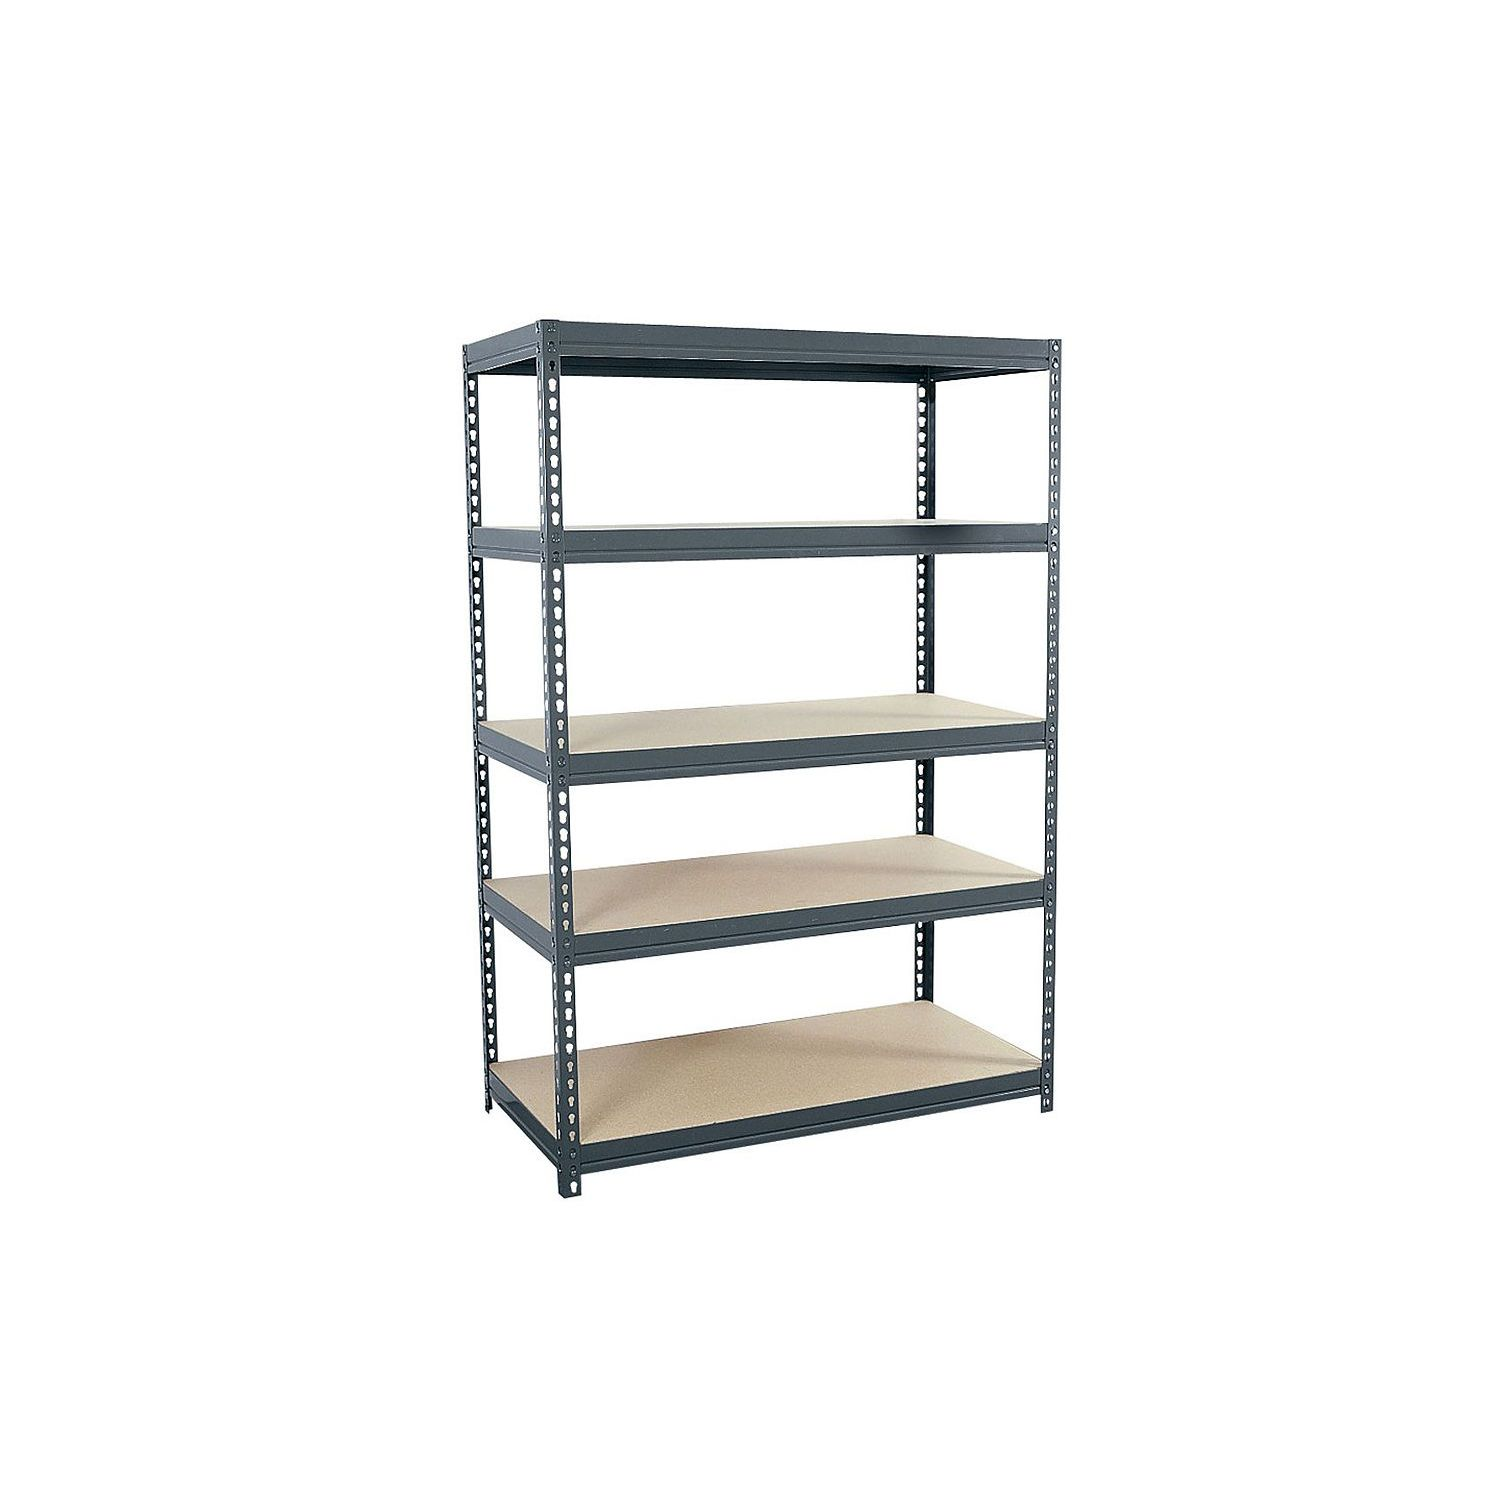 Use Edsal Shelving At Your Garage To Save Your Tools: Chic Gray Five Tier Design Edsal Shelving Made Of Iron For Garage Furniture Ideas